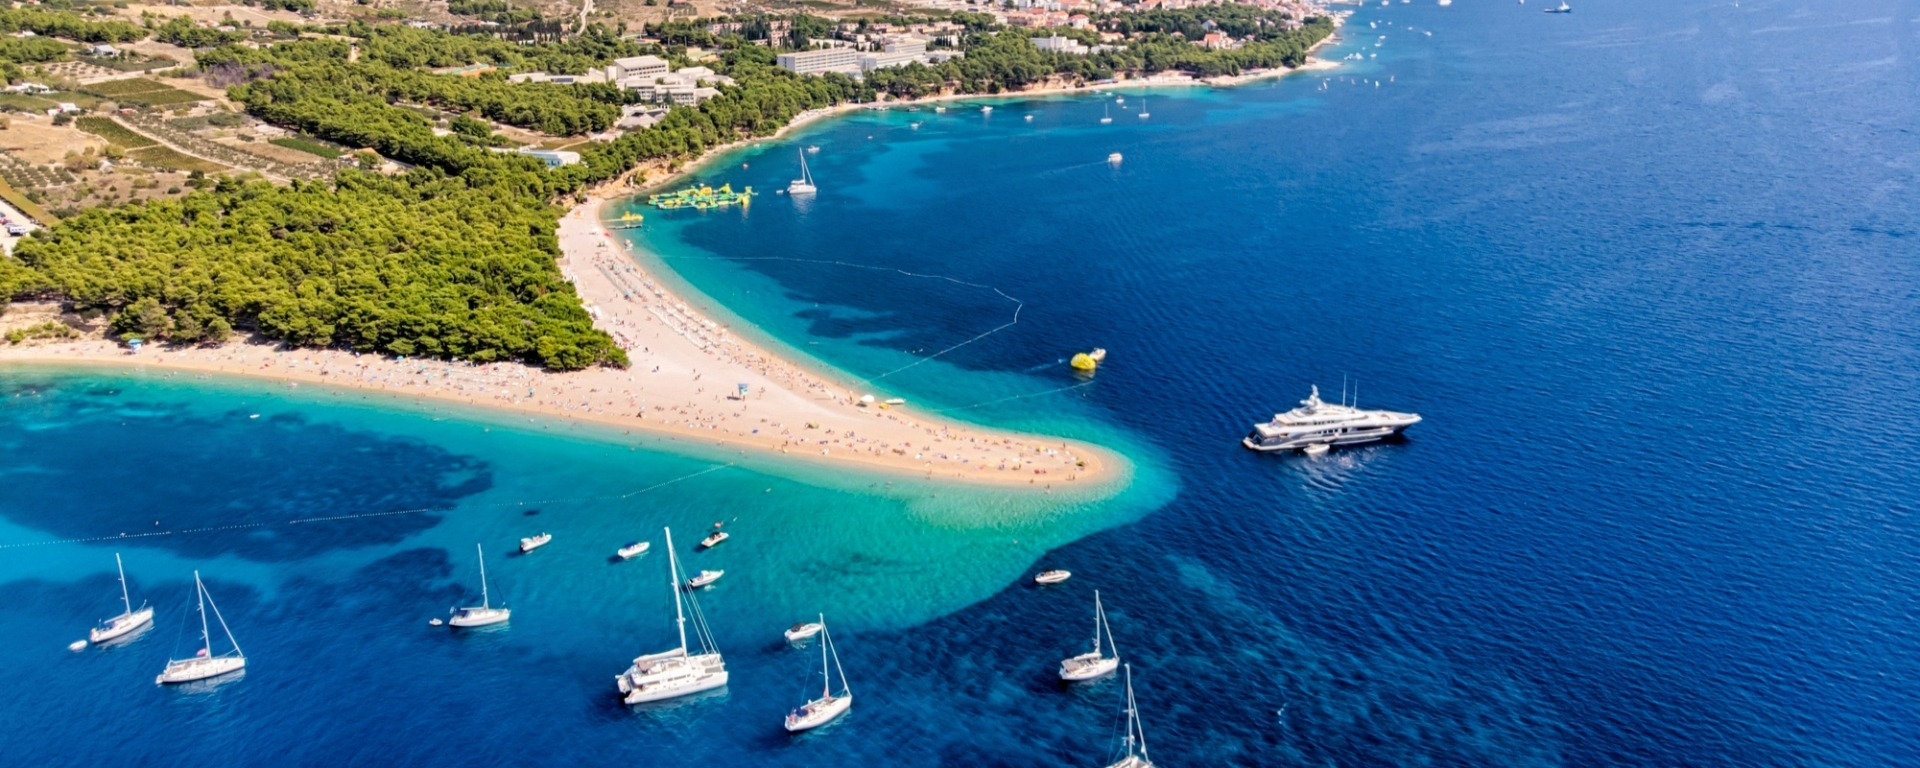 Six of Croatia's best island destinations for beaches, food